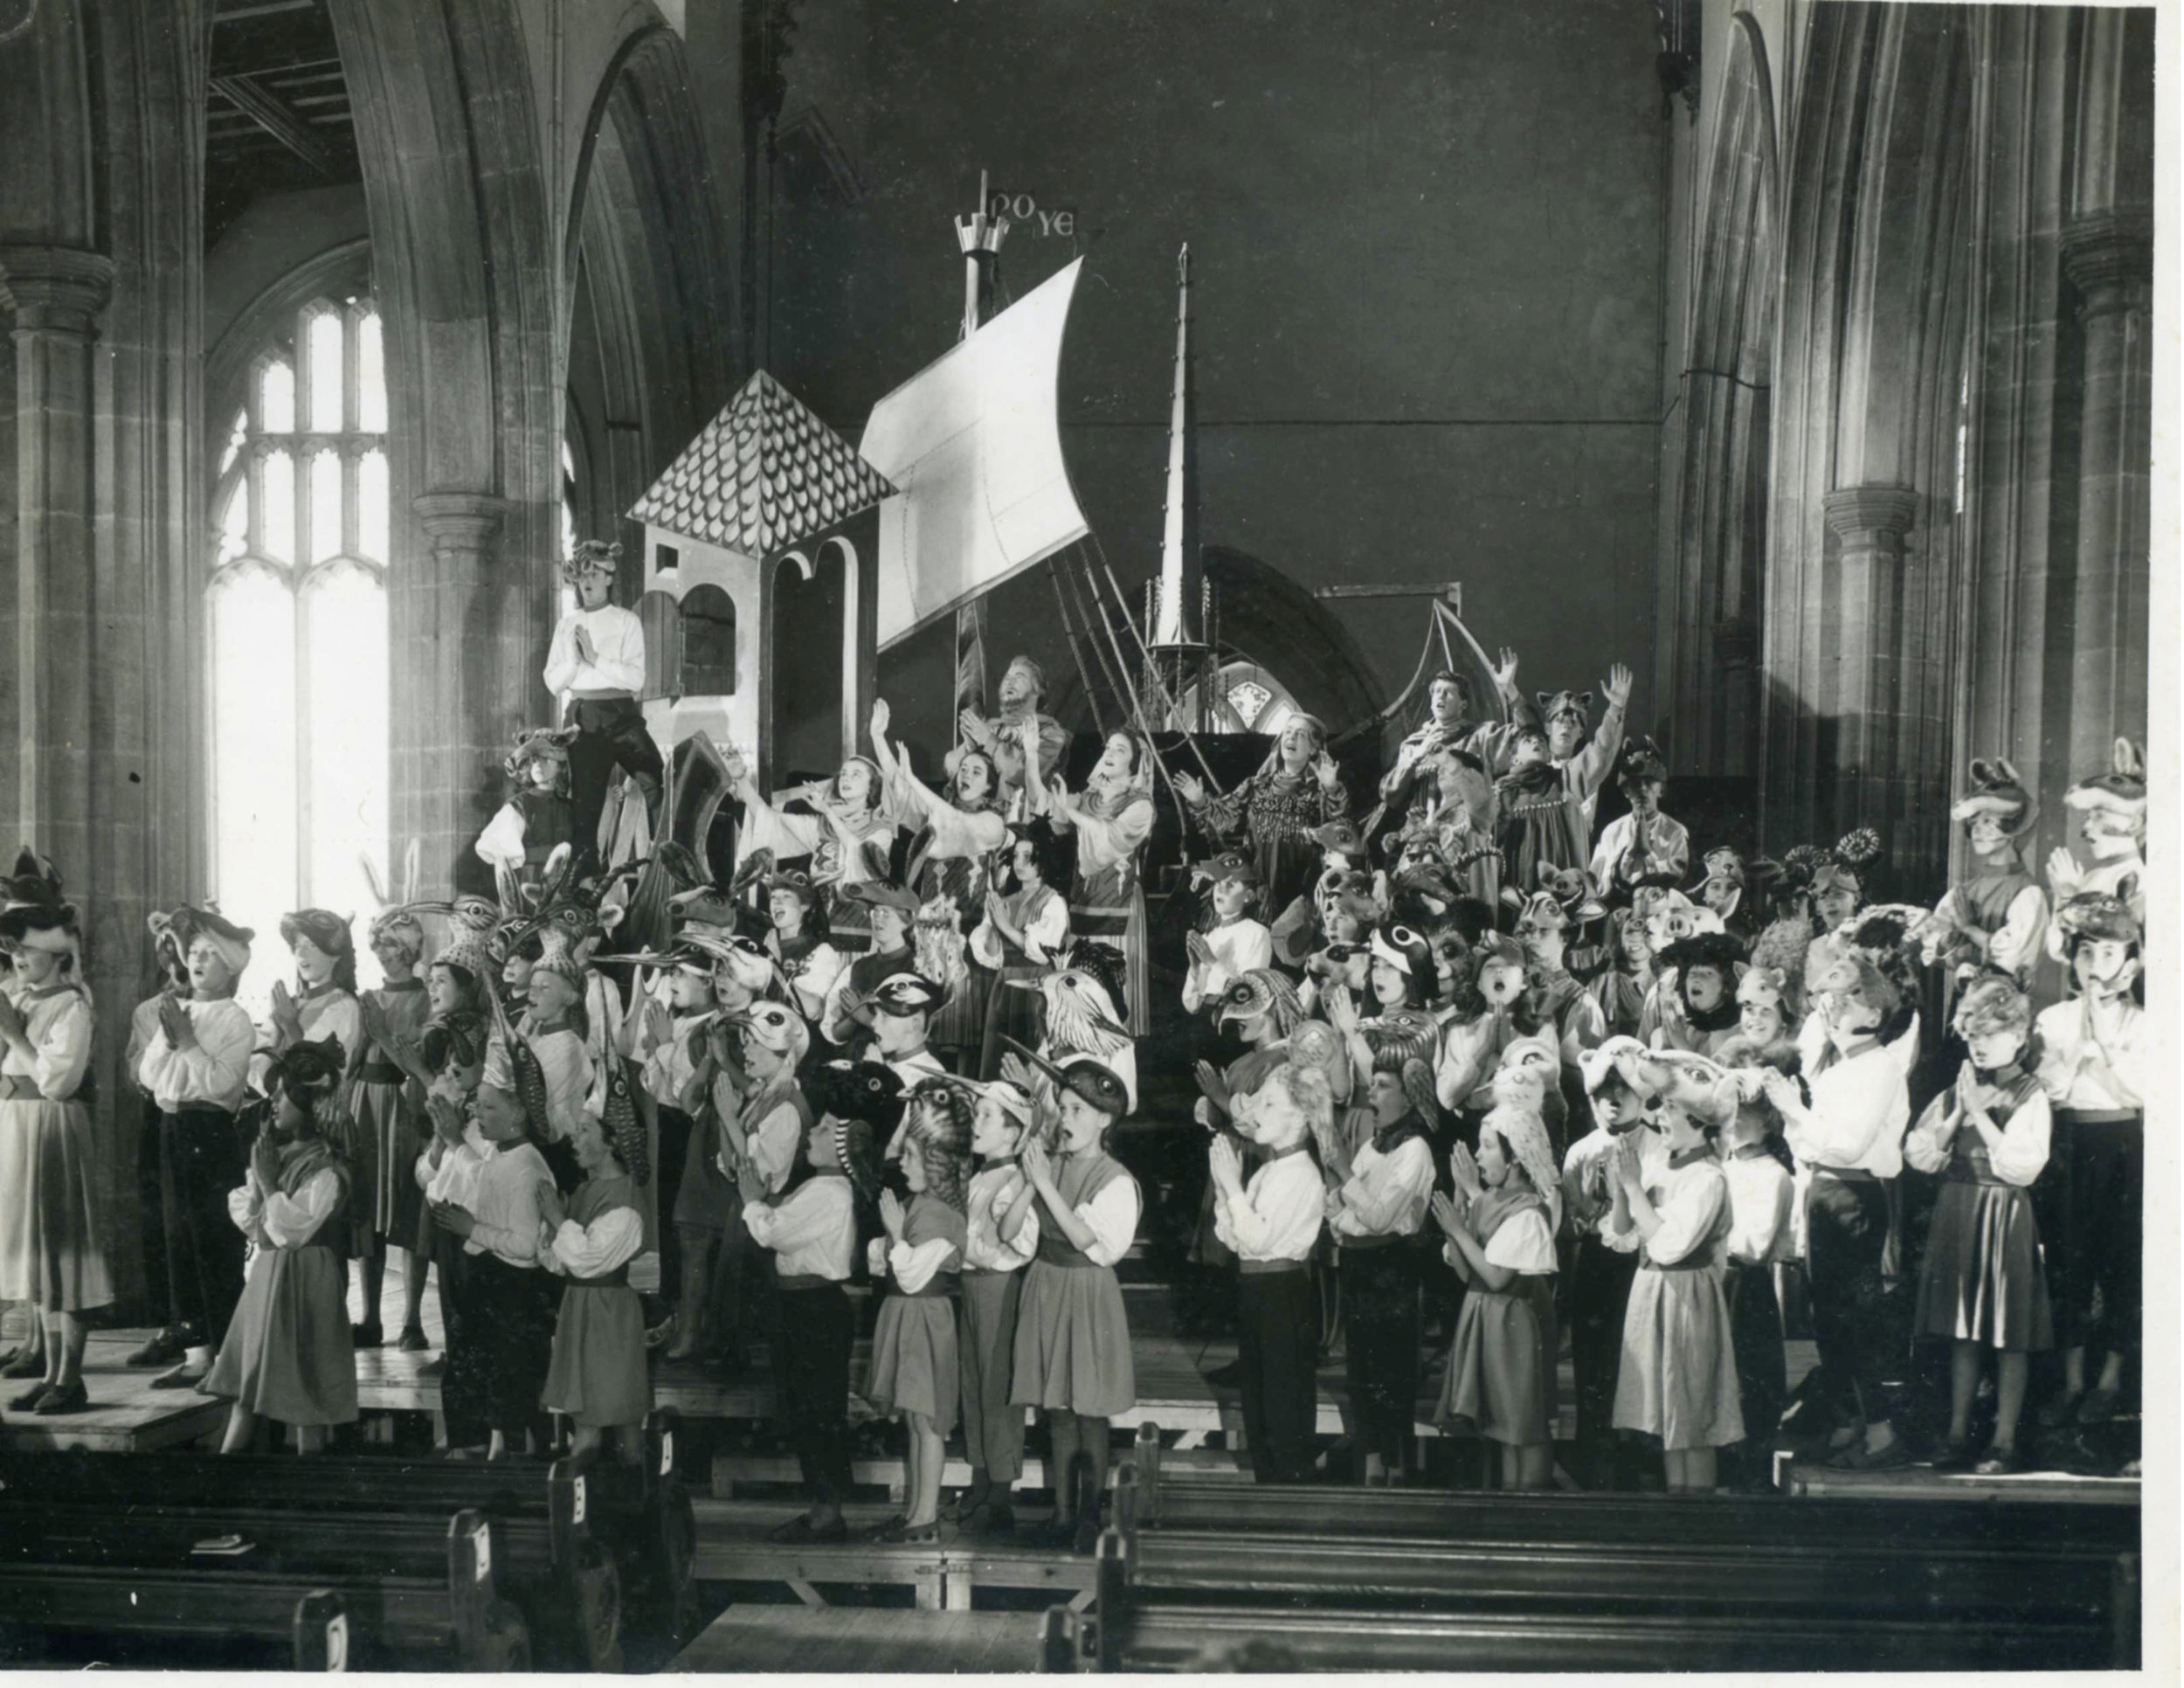 The 1959 production of Noye's Fludde at St. Margaret's Church, Lowestoft